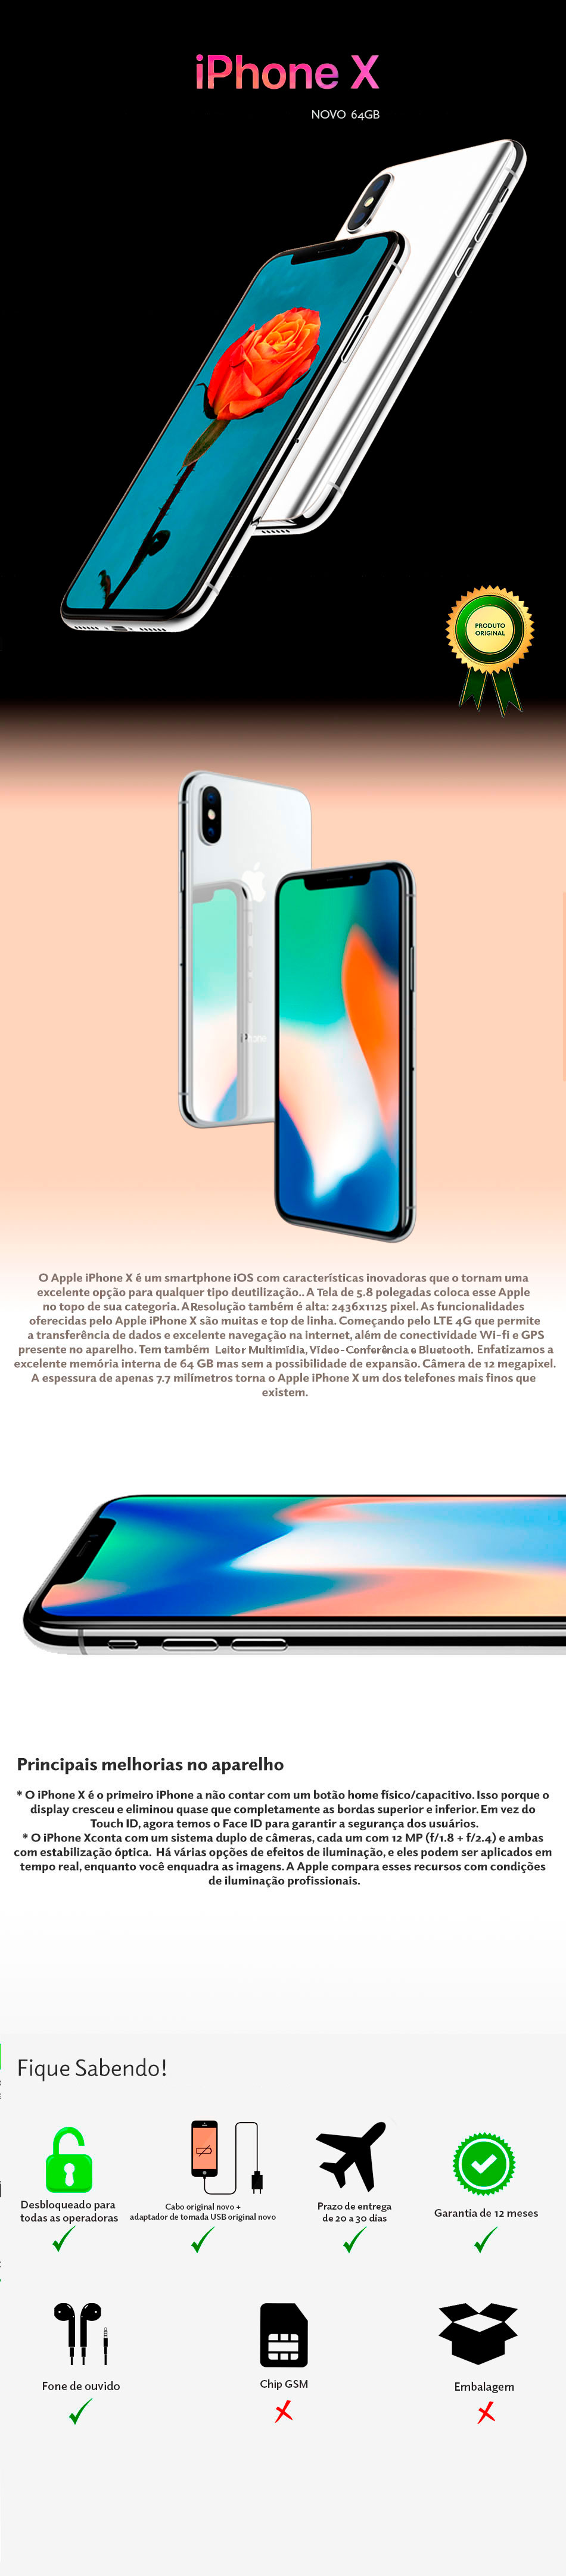 iPhone X 64GB Novo